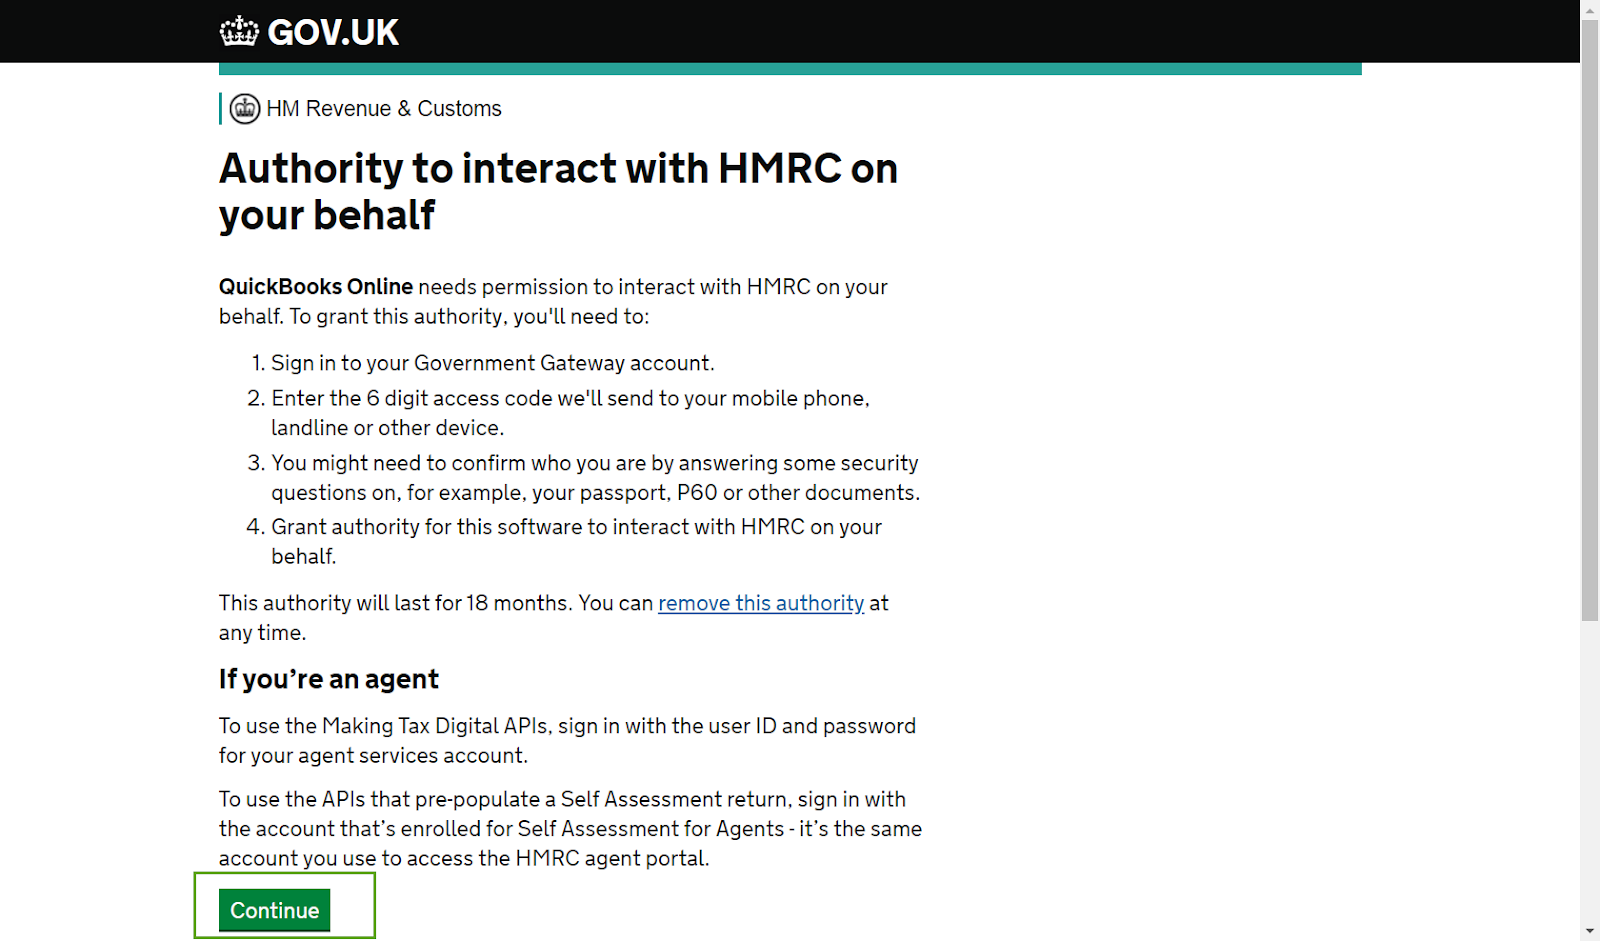 Authorise QuickBooks to interact with HMRC - MTD f